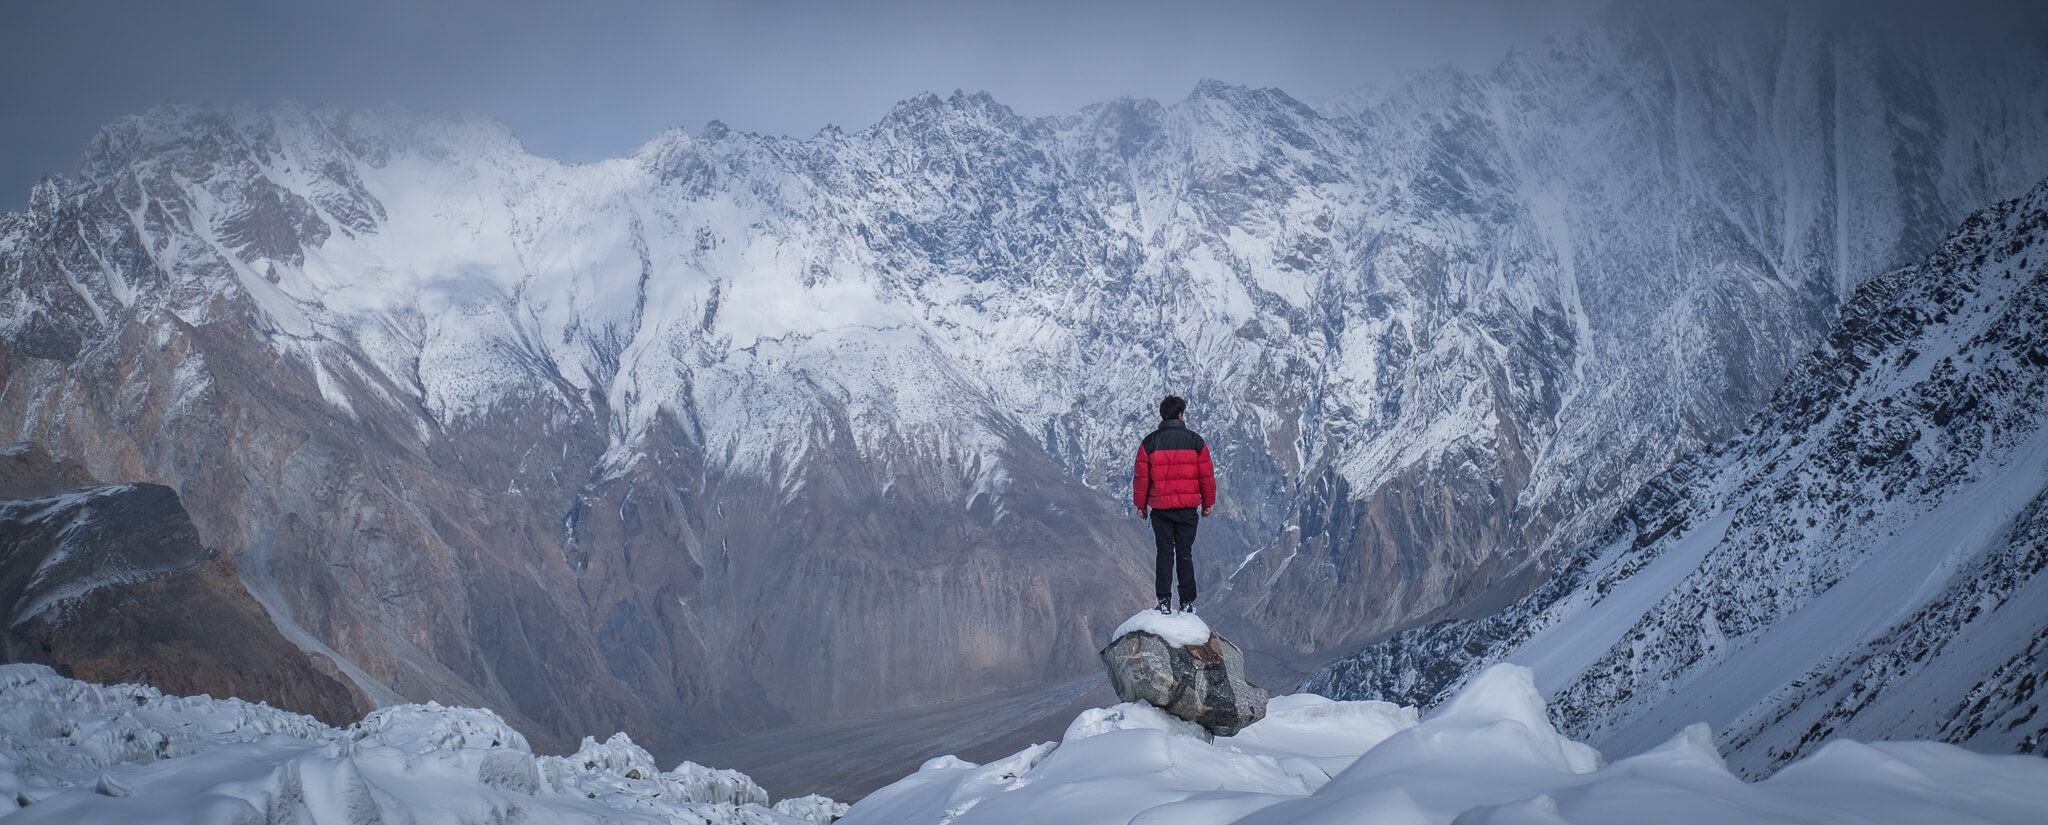 Will stands at en epic lookout in front of a snow-covered mountain in Pakistan